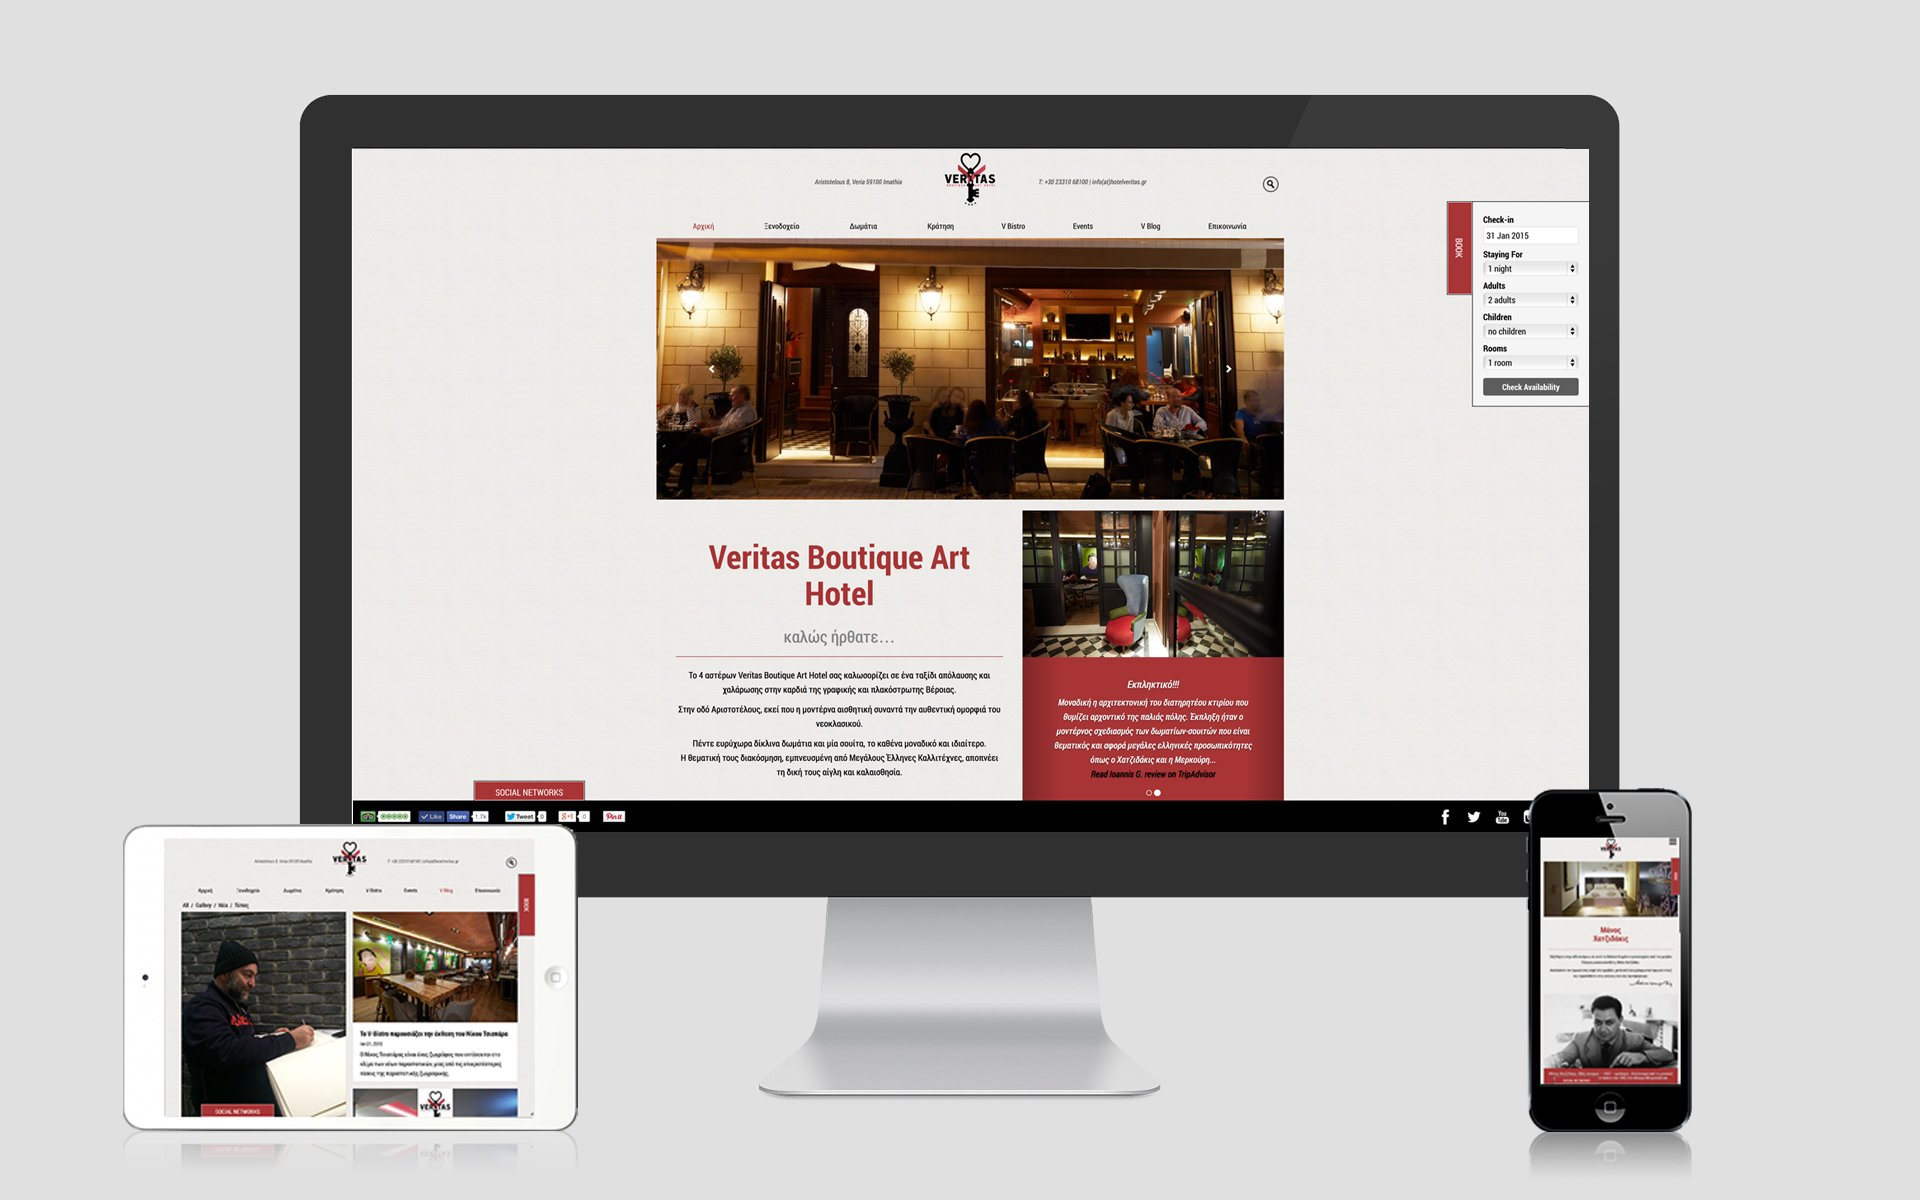 sitepreview